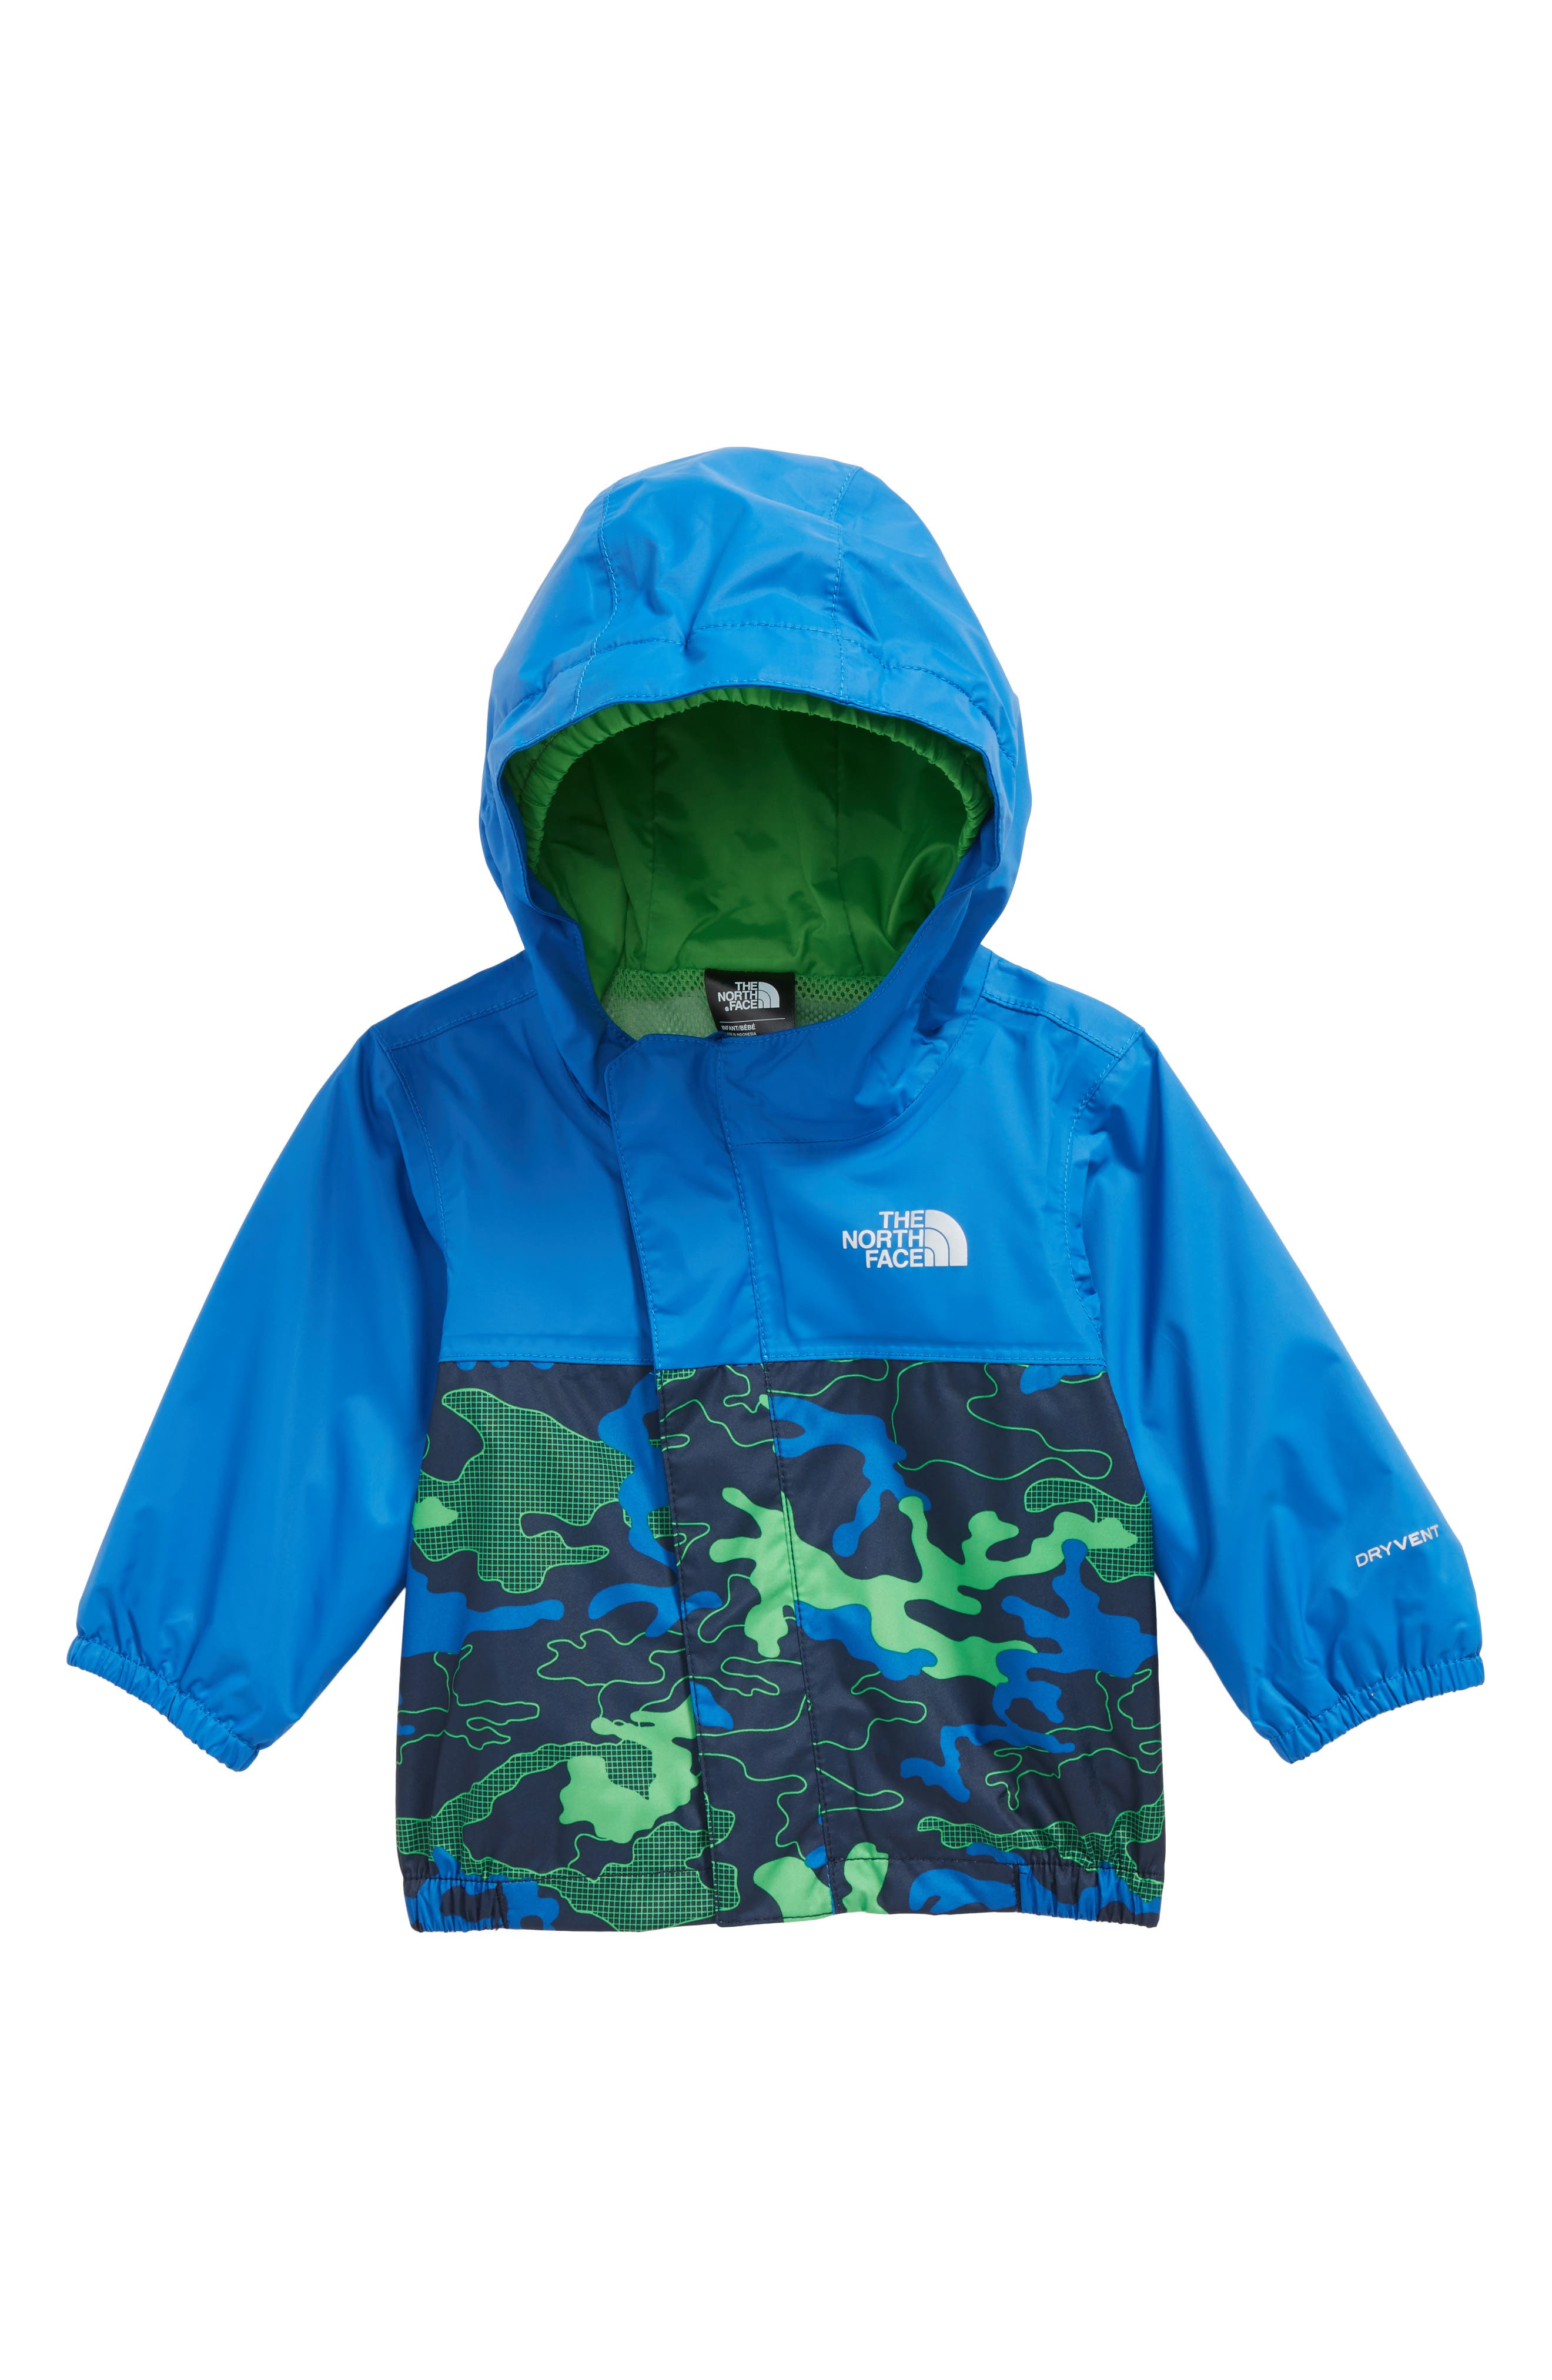 Tailout Hooded Rain Jacket,                         Main,                         color, Cosmic Blue/ Woodland Camo